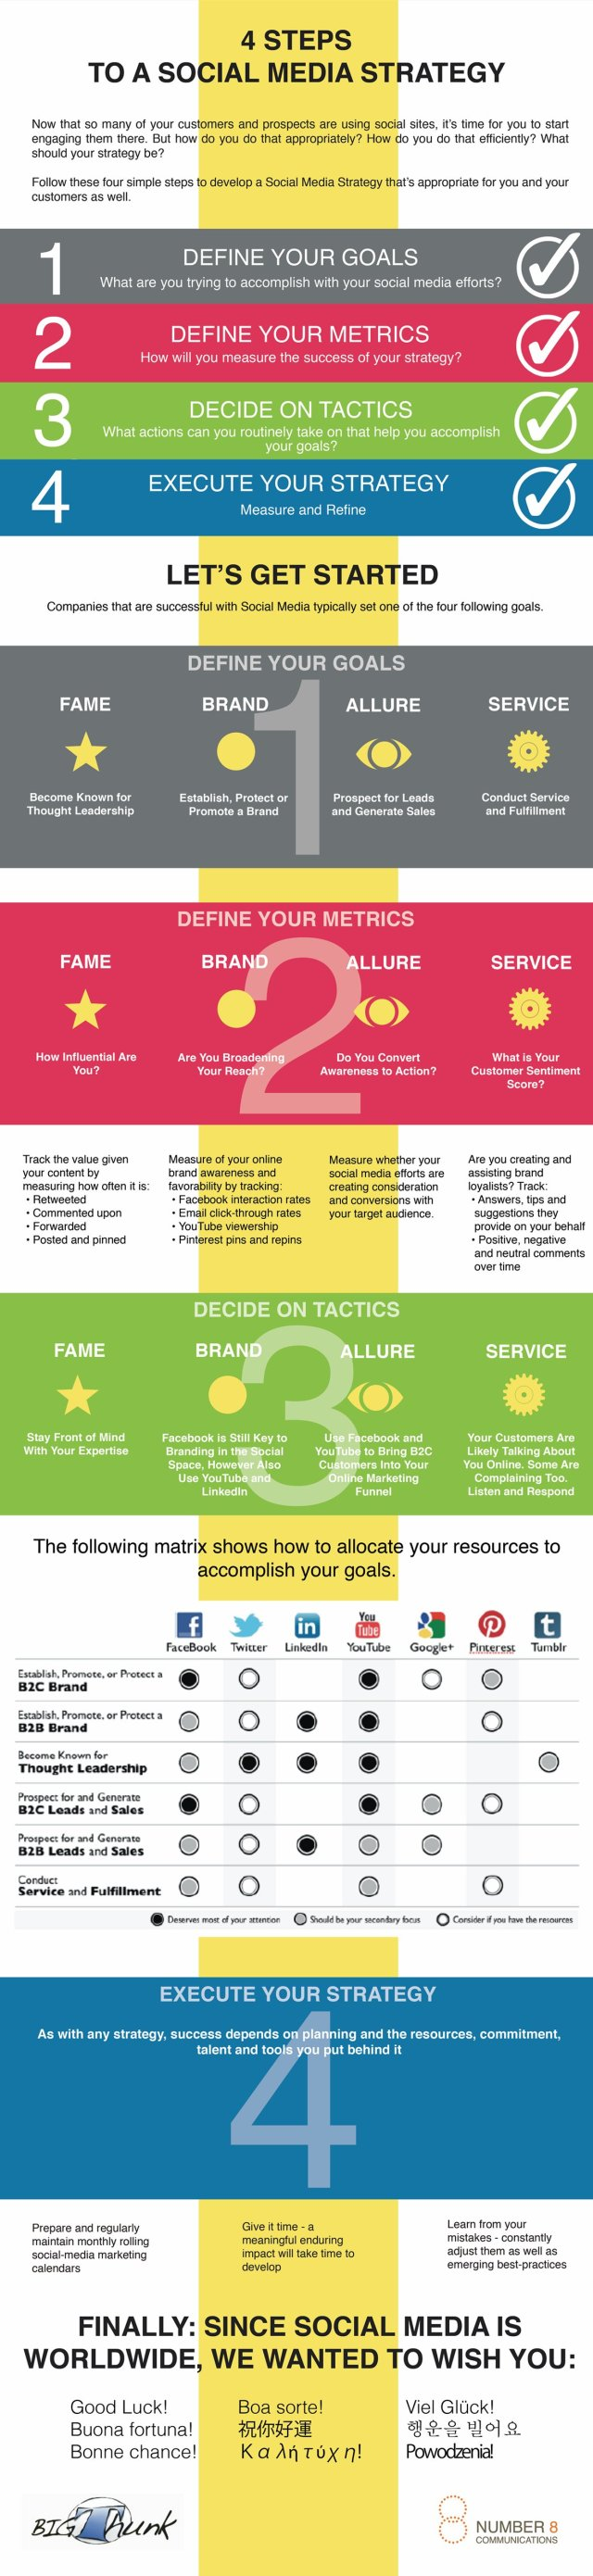 four-steps-to-a-social-media-strategy-infographic